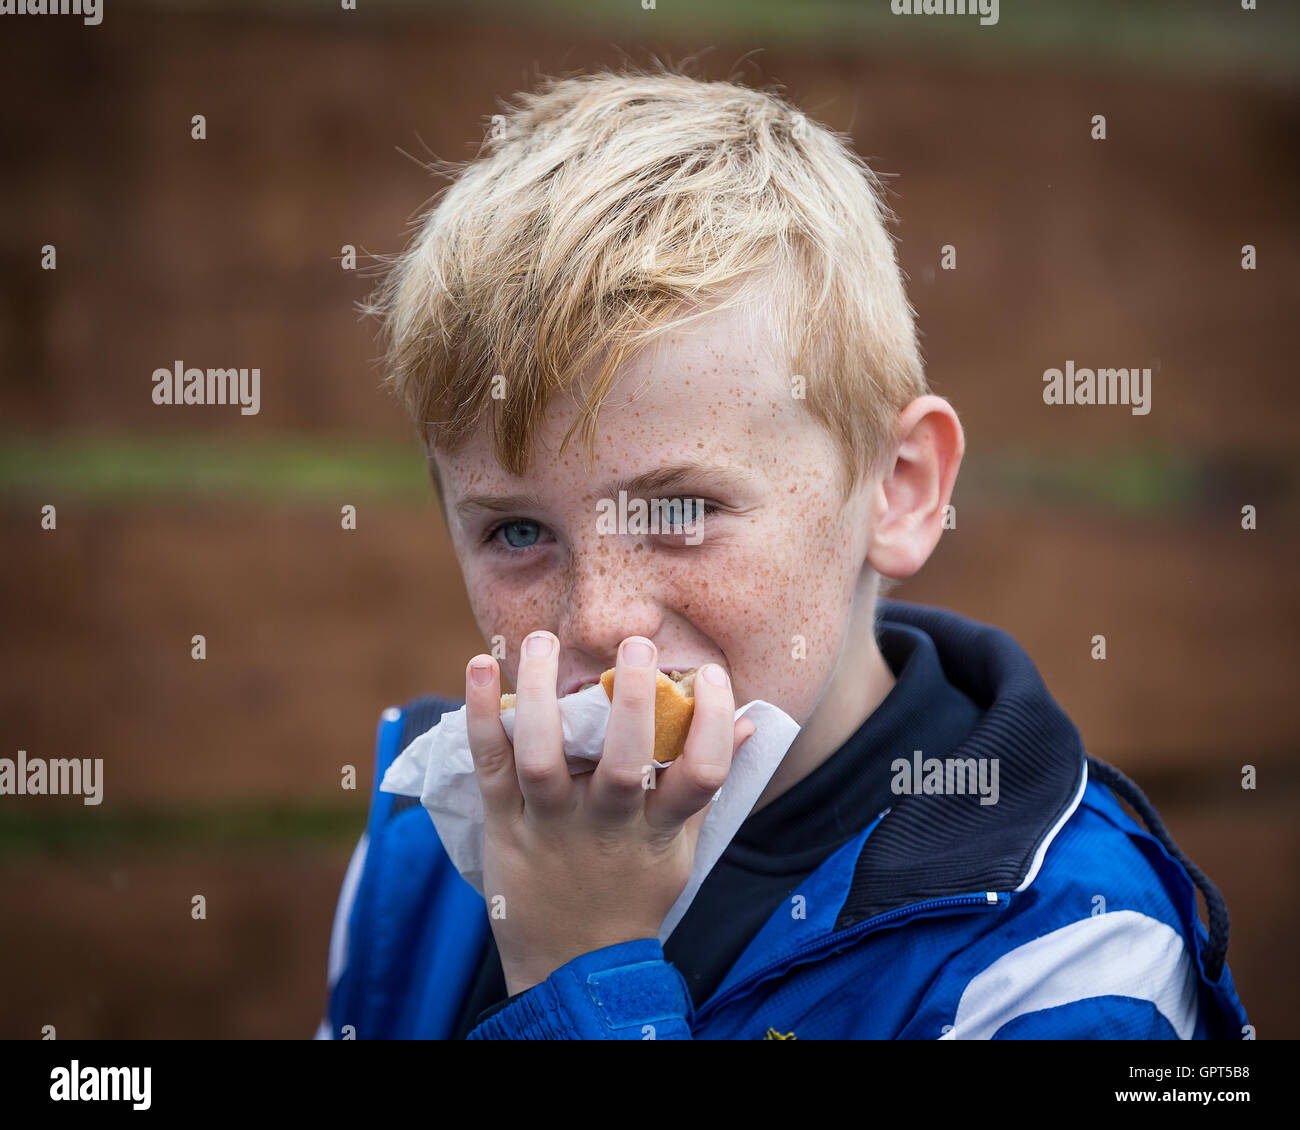 Young, smiling, blond boy holding and eating a pie with one hand - Stock Image